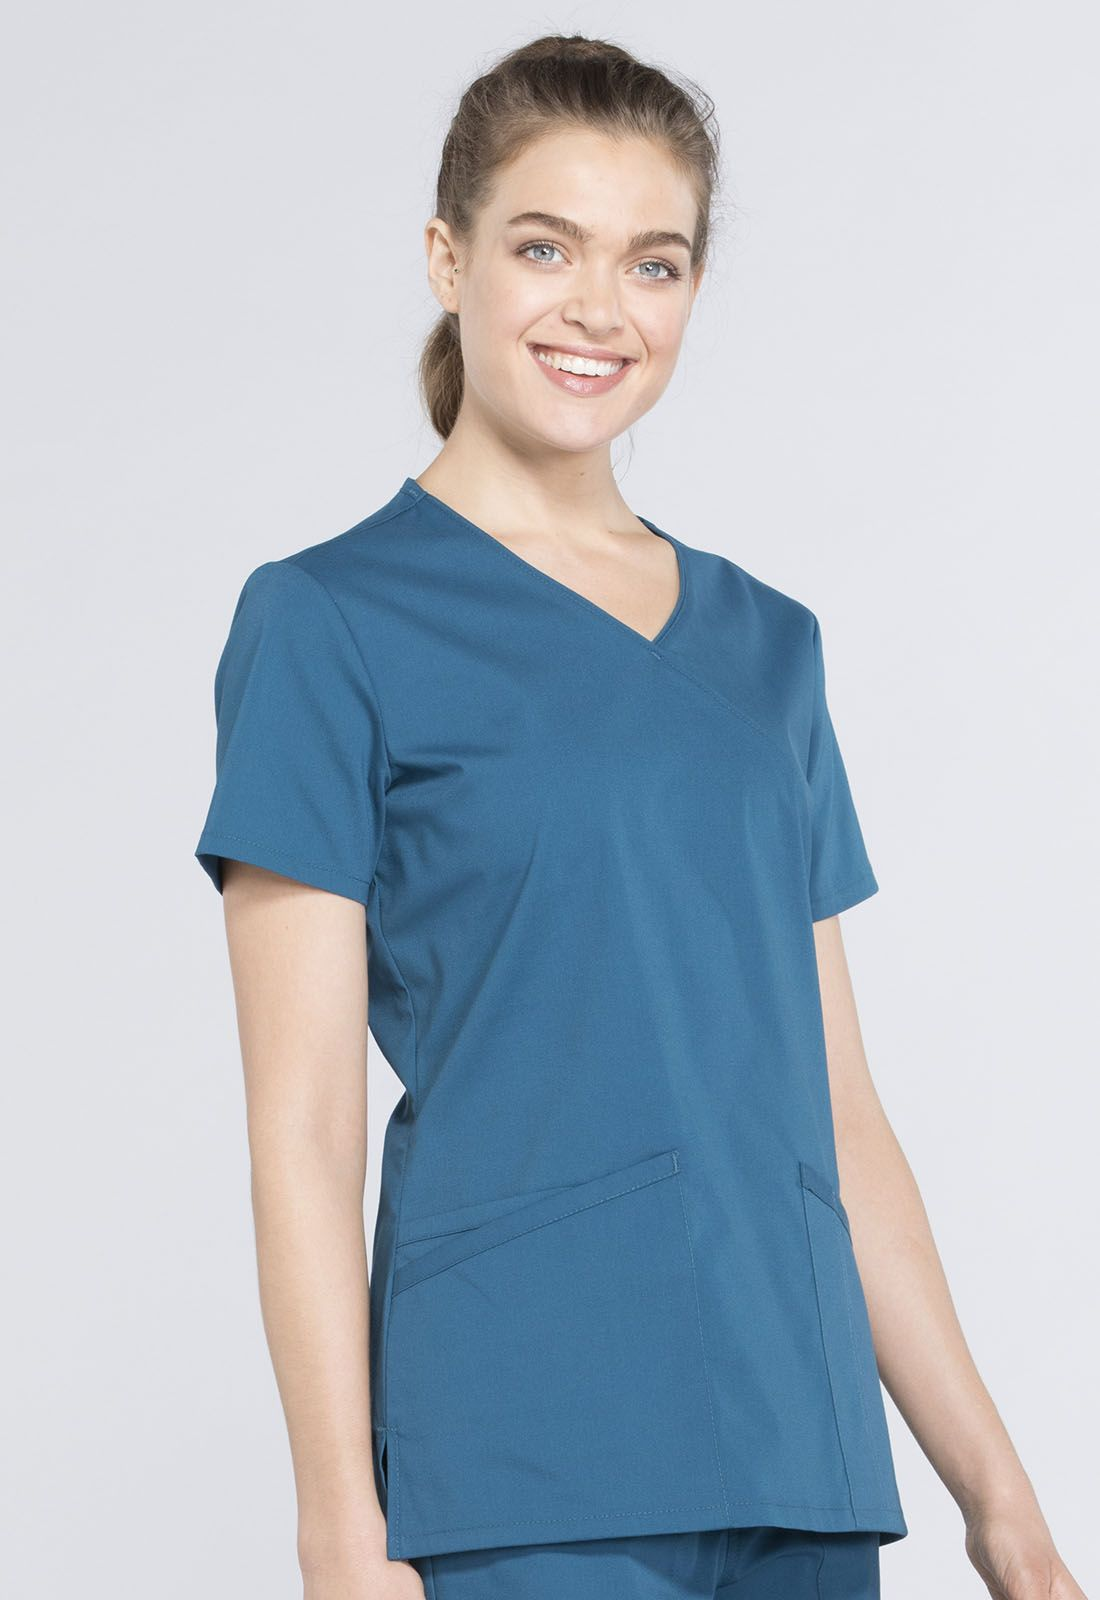 https://medcloth.by/images/stories/virtuemart/product/ww655-carw-38.jpg